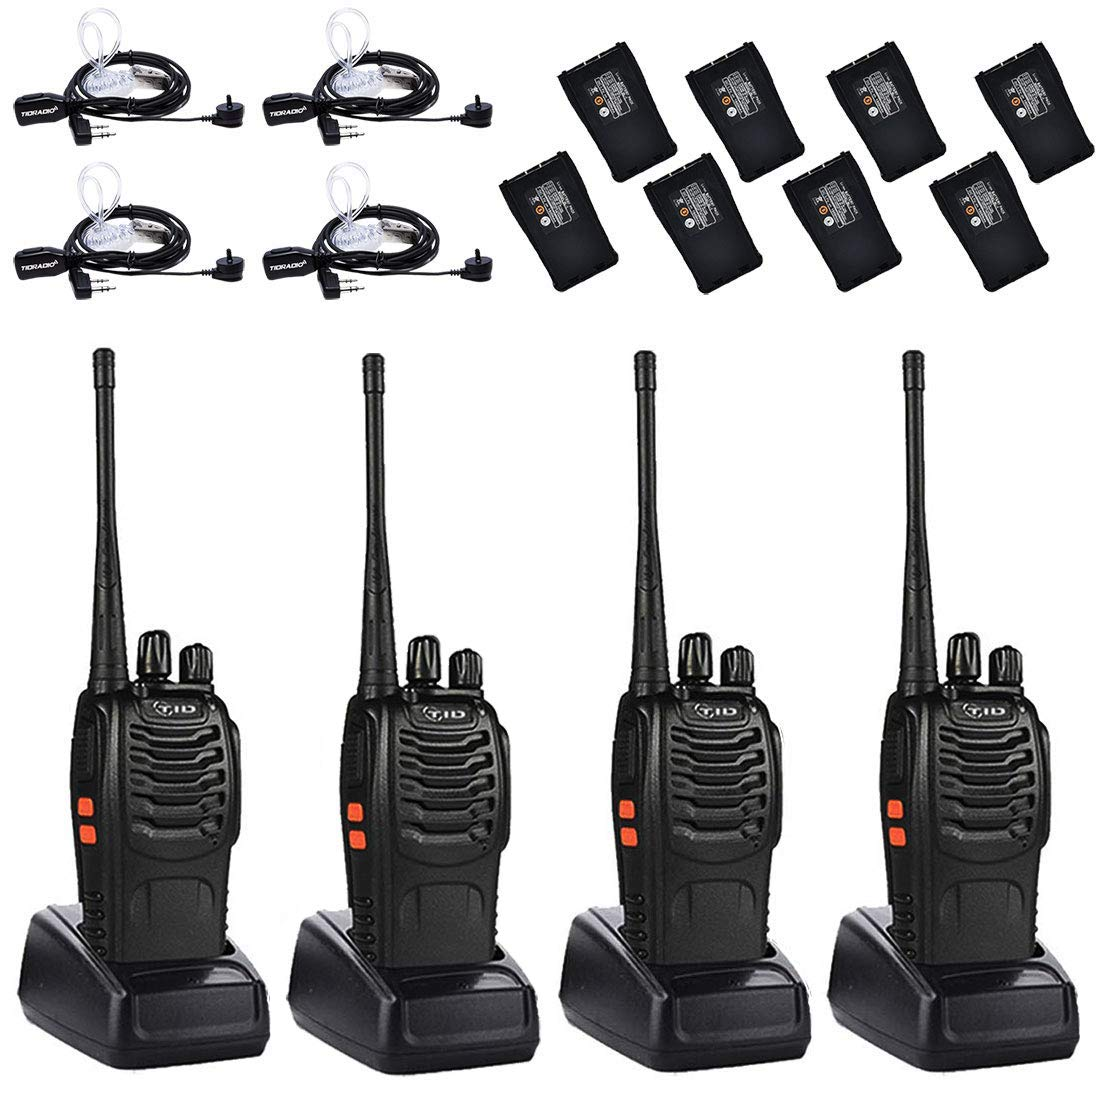 2Way Radios UHF Radio Rechargeable Two Way Radio FRS VOX Long Range Walkie Talkies for Adults with Air Acoustic Earpiece 4 Pack